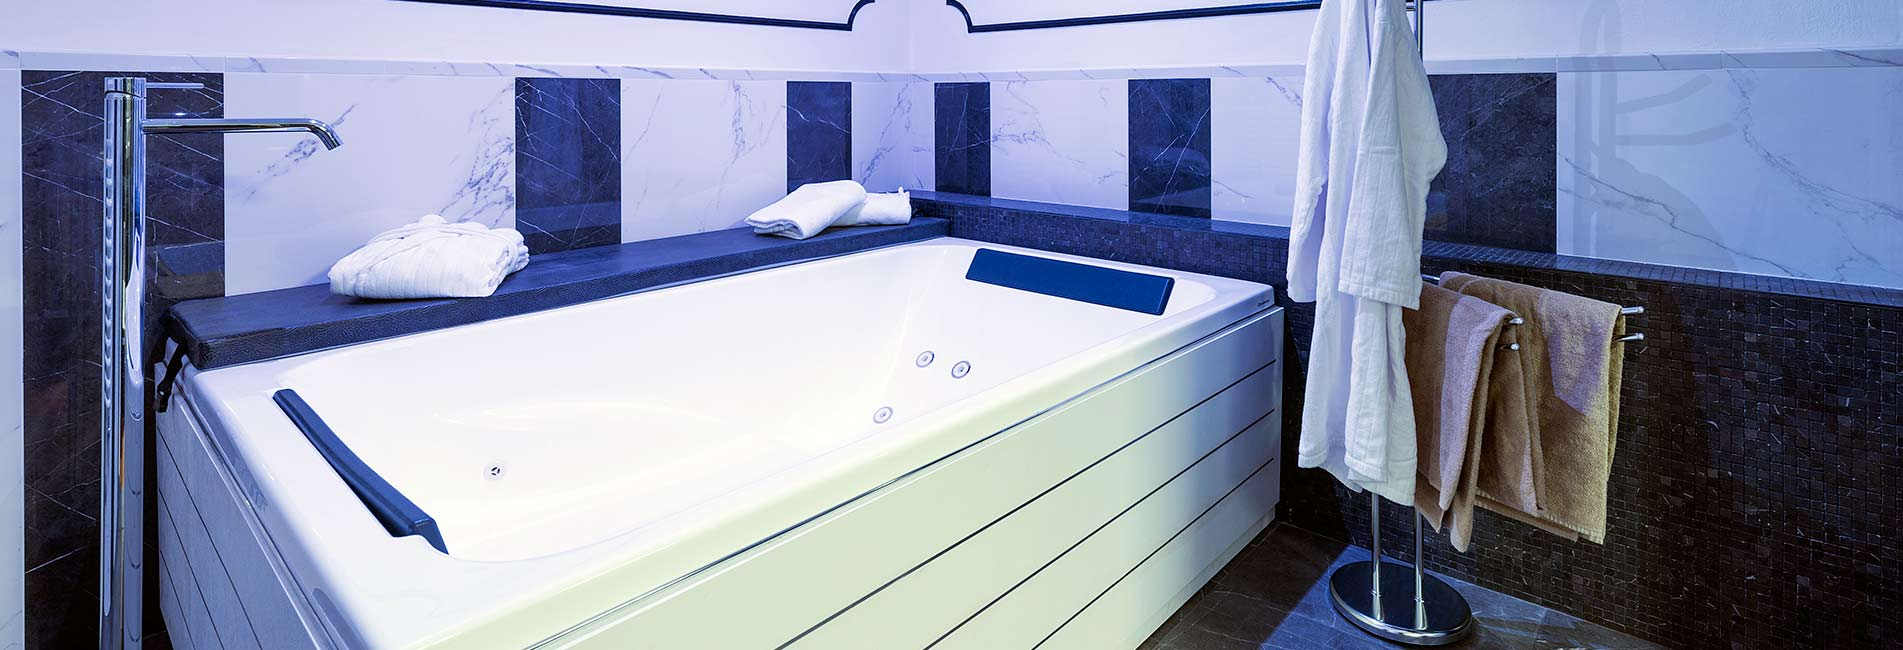 BB_florence_center_SPA2